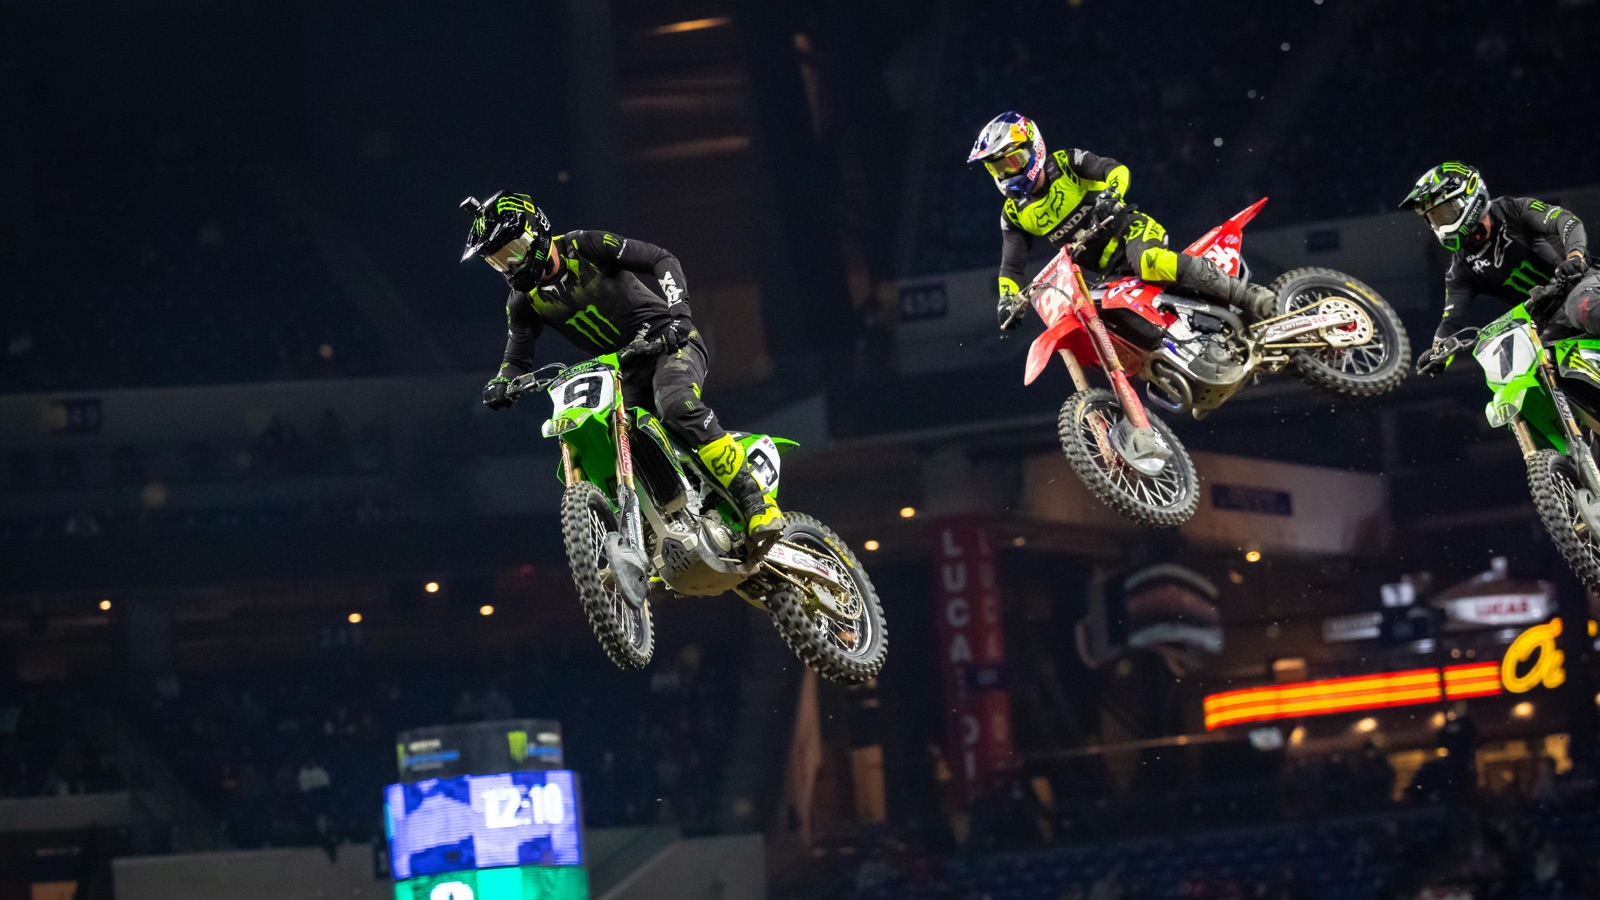 Ken Roczen (#94) was on a mission to win in Indy.